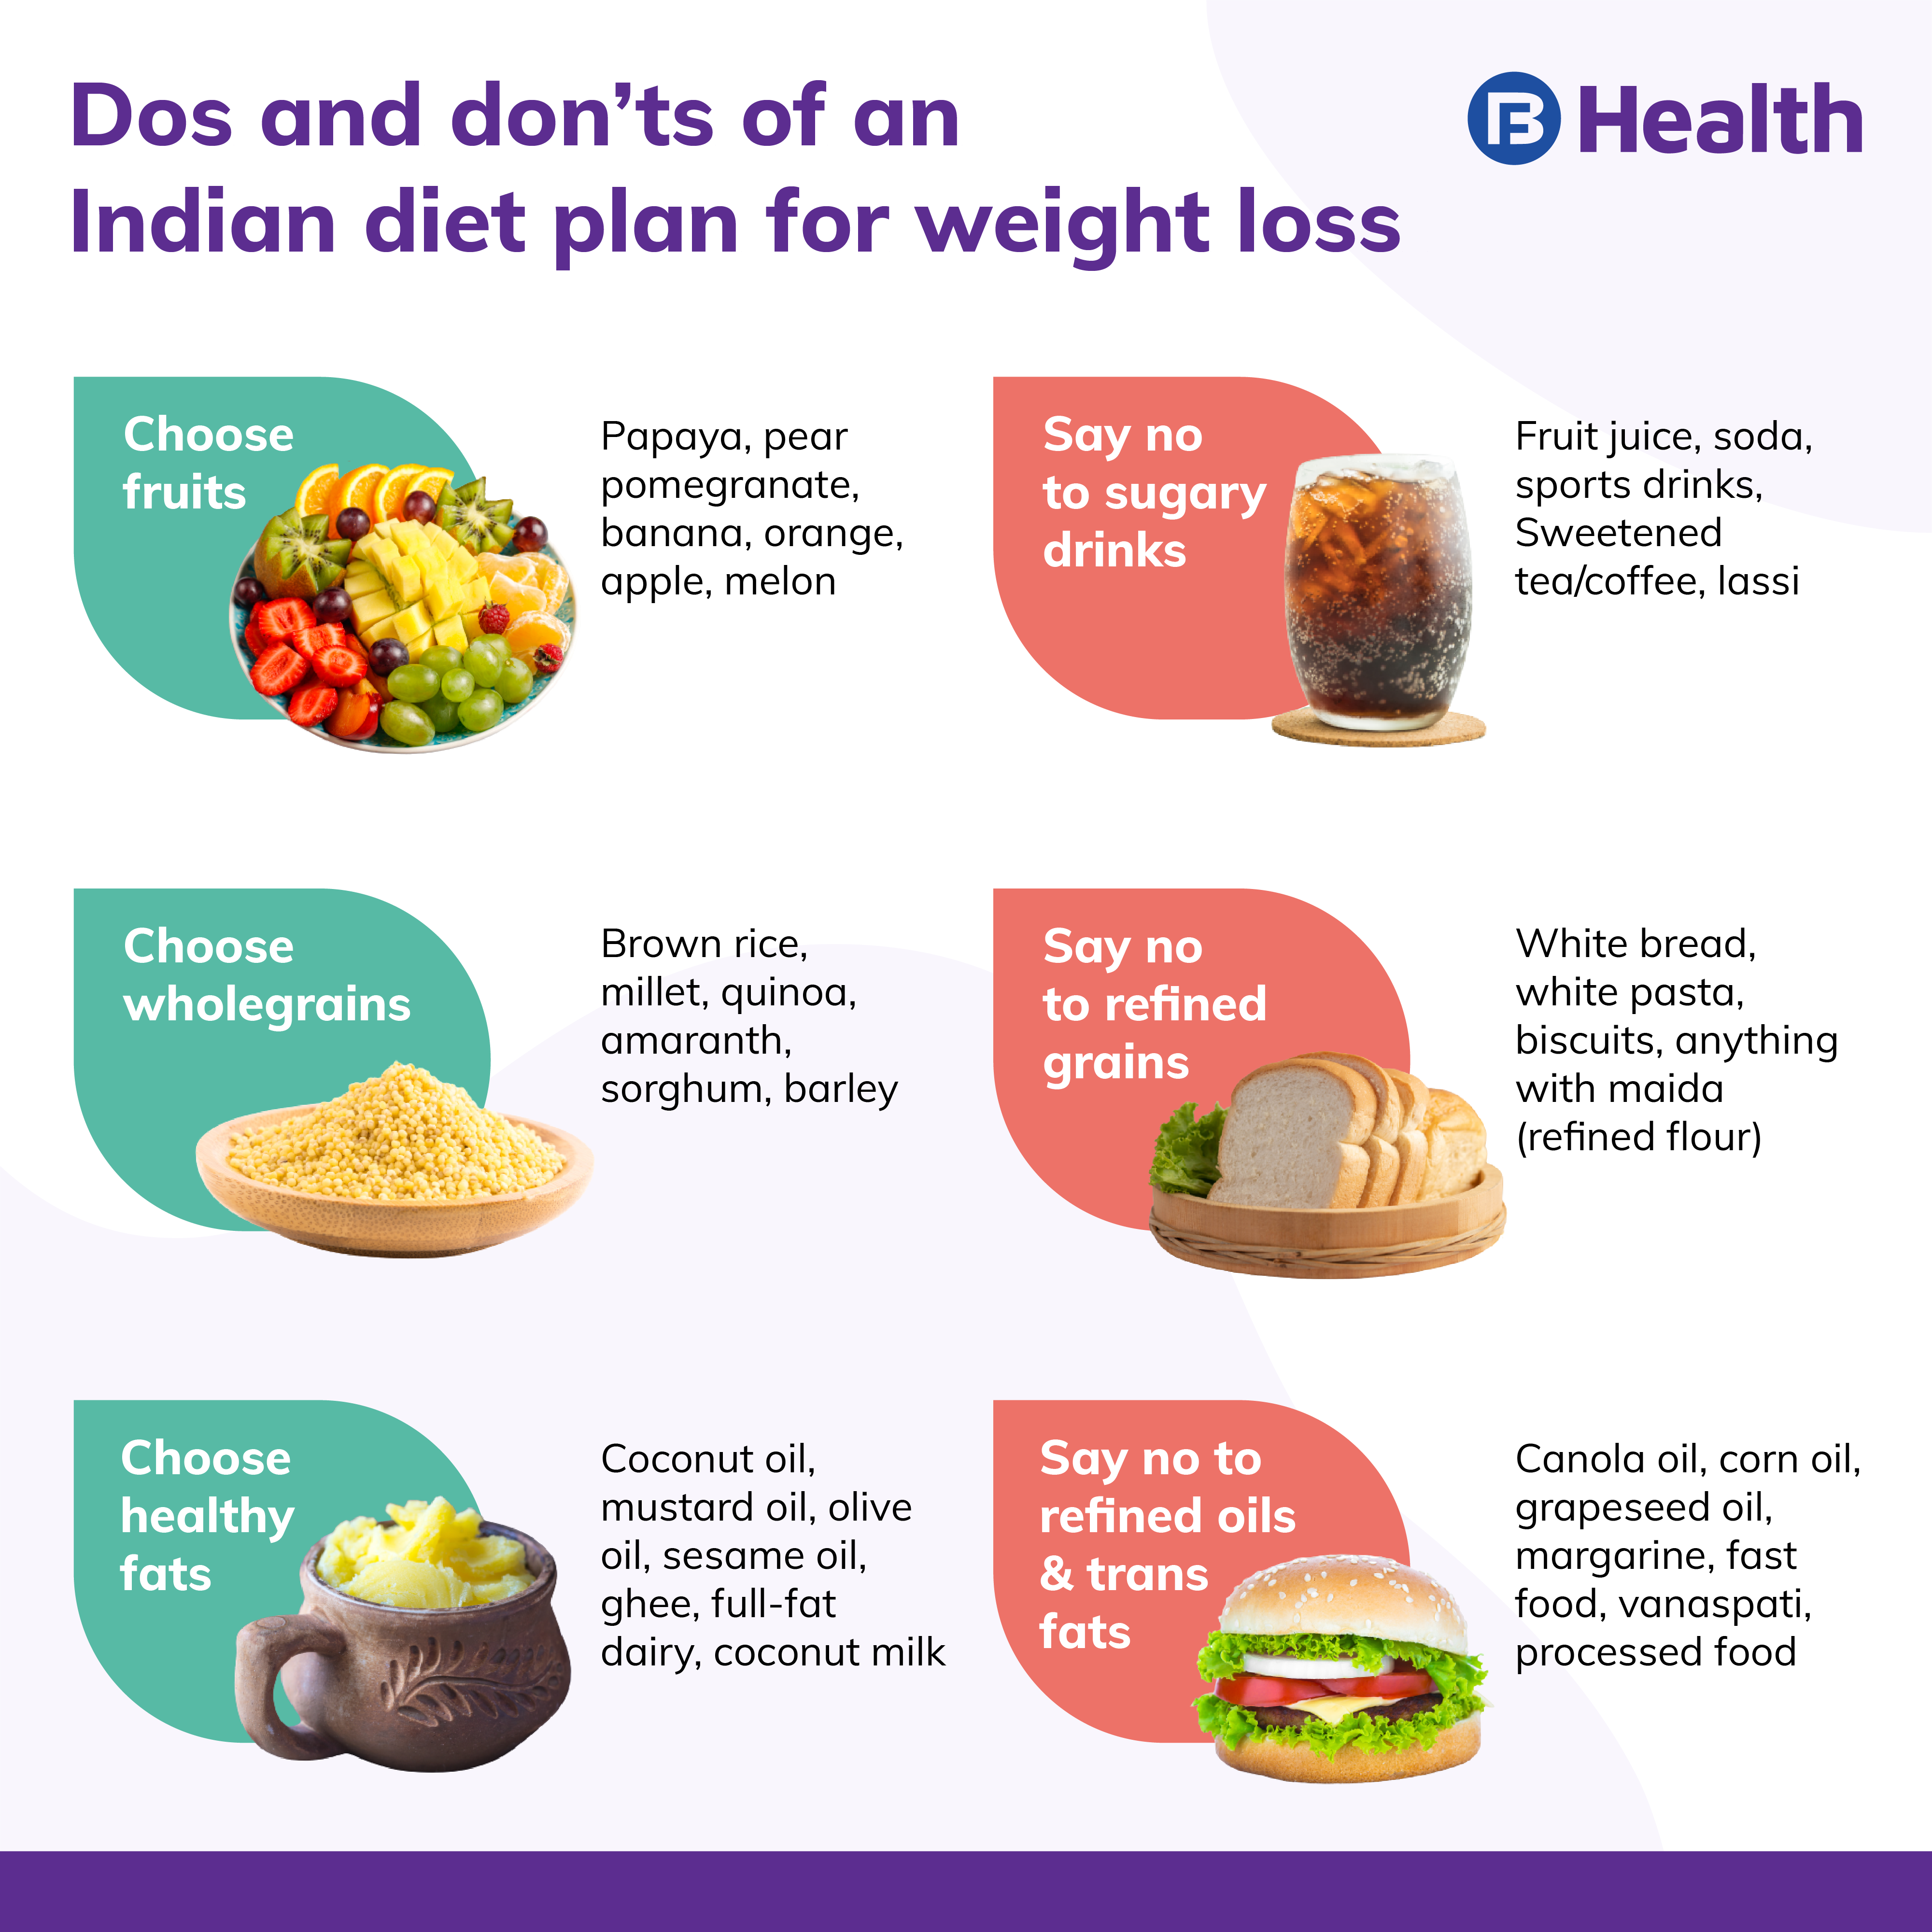 Dos and don'ts of an Indian diet plan for weight loss_Bajaj Finserv Health